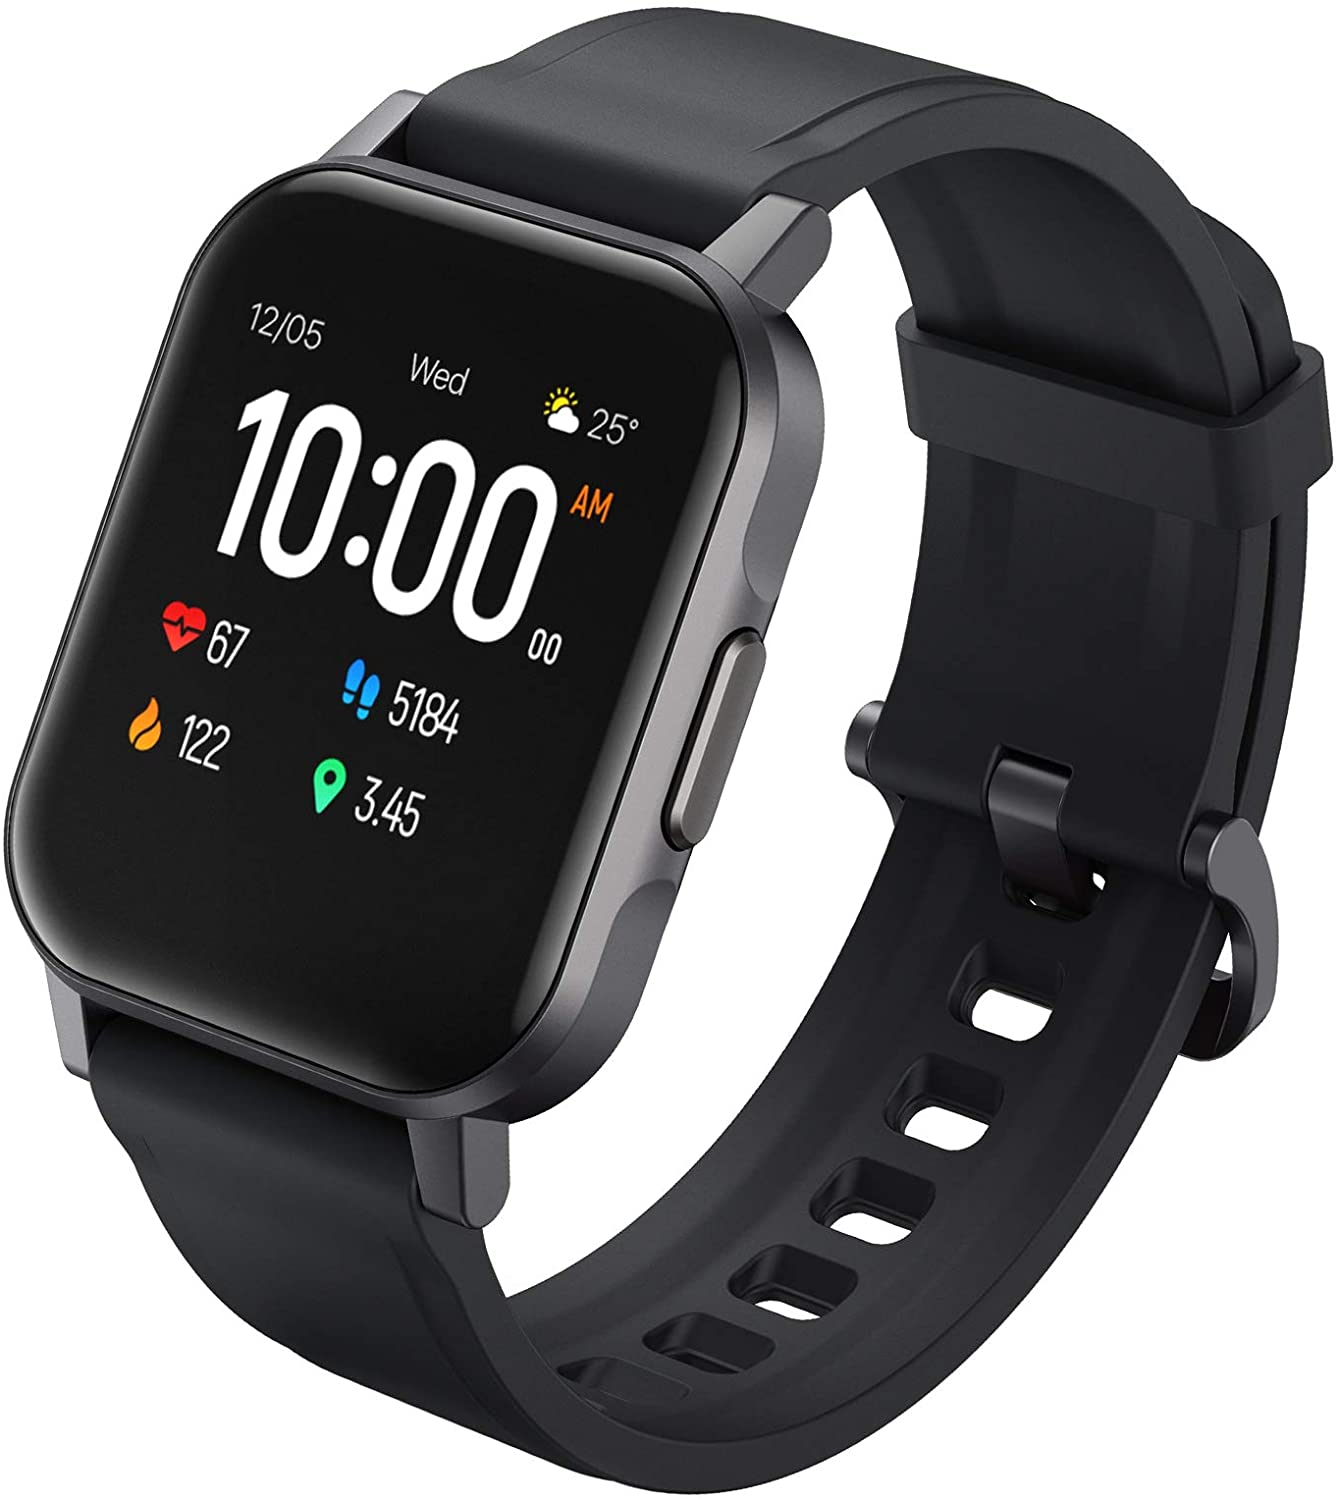 AUKEY LS02 Smart Watch Review: Track Sleep, Exercise, Heart Rate and Notifications